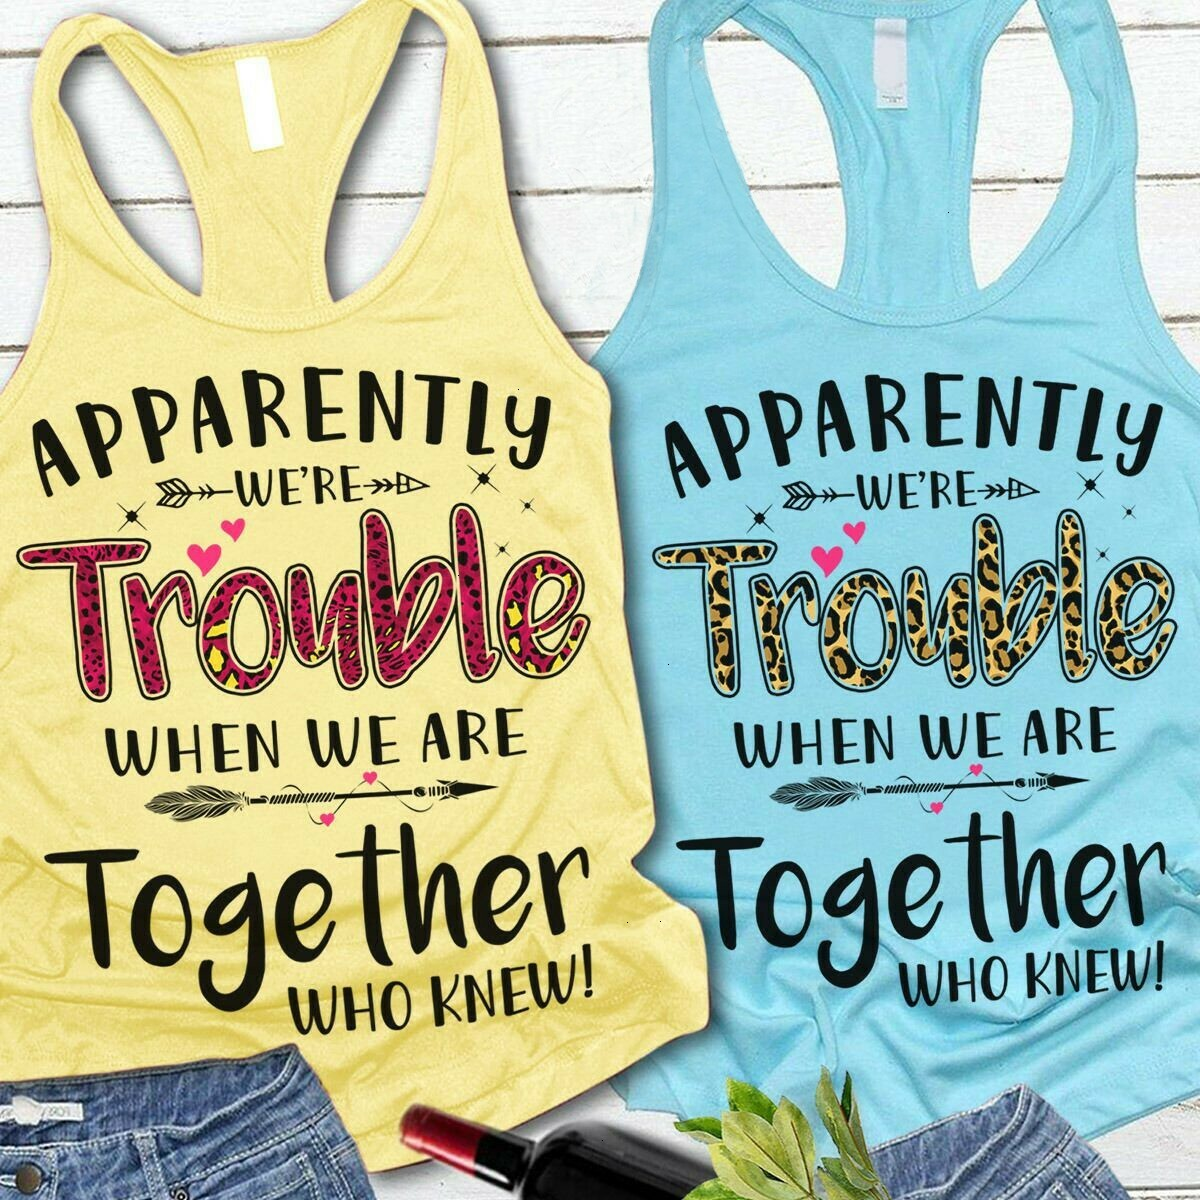 Apparently We're Trouble When We Are Together Who Knew for Her Momy Mama Grandma Unisex T-Shirt Hoodie Sweatshirt Sweater Plus Size for Ladies Women Men Kids Youth Gifts Tee Jolly Family Gifts